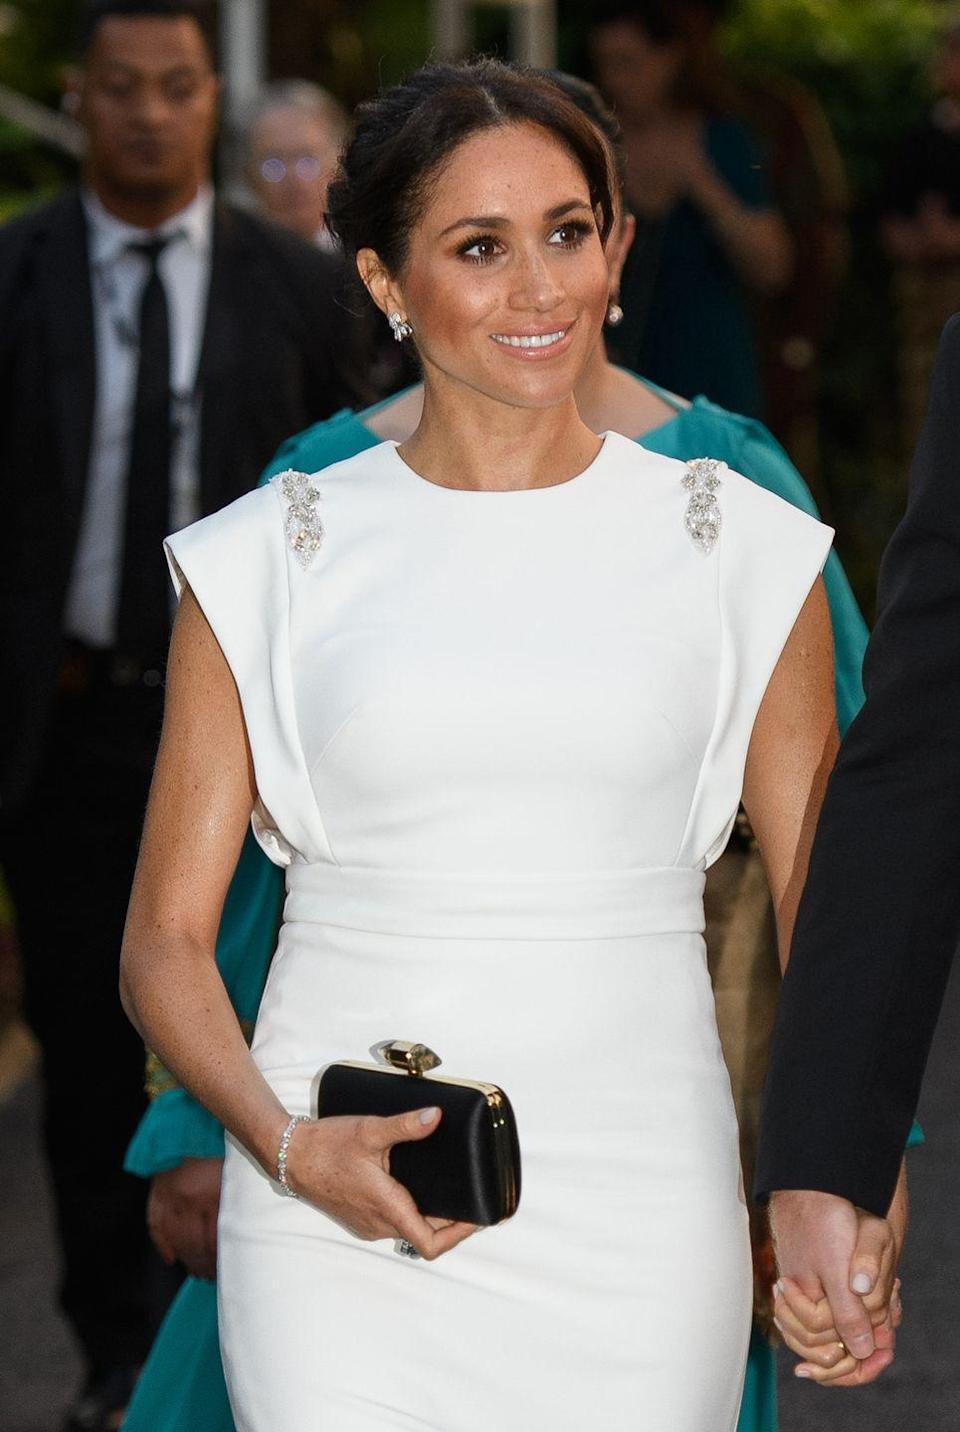 """<p>During the Prince Harry and Meghan's Royal Tour to Australia, Fiji, Tonga, and New Zealand, the Duchess wore her late mother-in-law's exquisite aquamarine ring in quiet tribute. <em><a href=""""https://www.townandcountrymag.com/style/jewelry-and-watches/a24216489/meghan-markle-princess-diana-aquamarine-cocktail-ring-tonga/"""" rel=""""nofollow noopener"""" target=""""_blank"""" data-ylk=""""slk:Town & Country"""" class=""""link rapid-noclick-resp"""">Town & Country</a> </em>reports the ring was part of a set that Diana wore many times.</p>"""